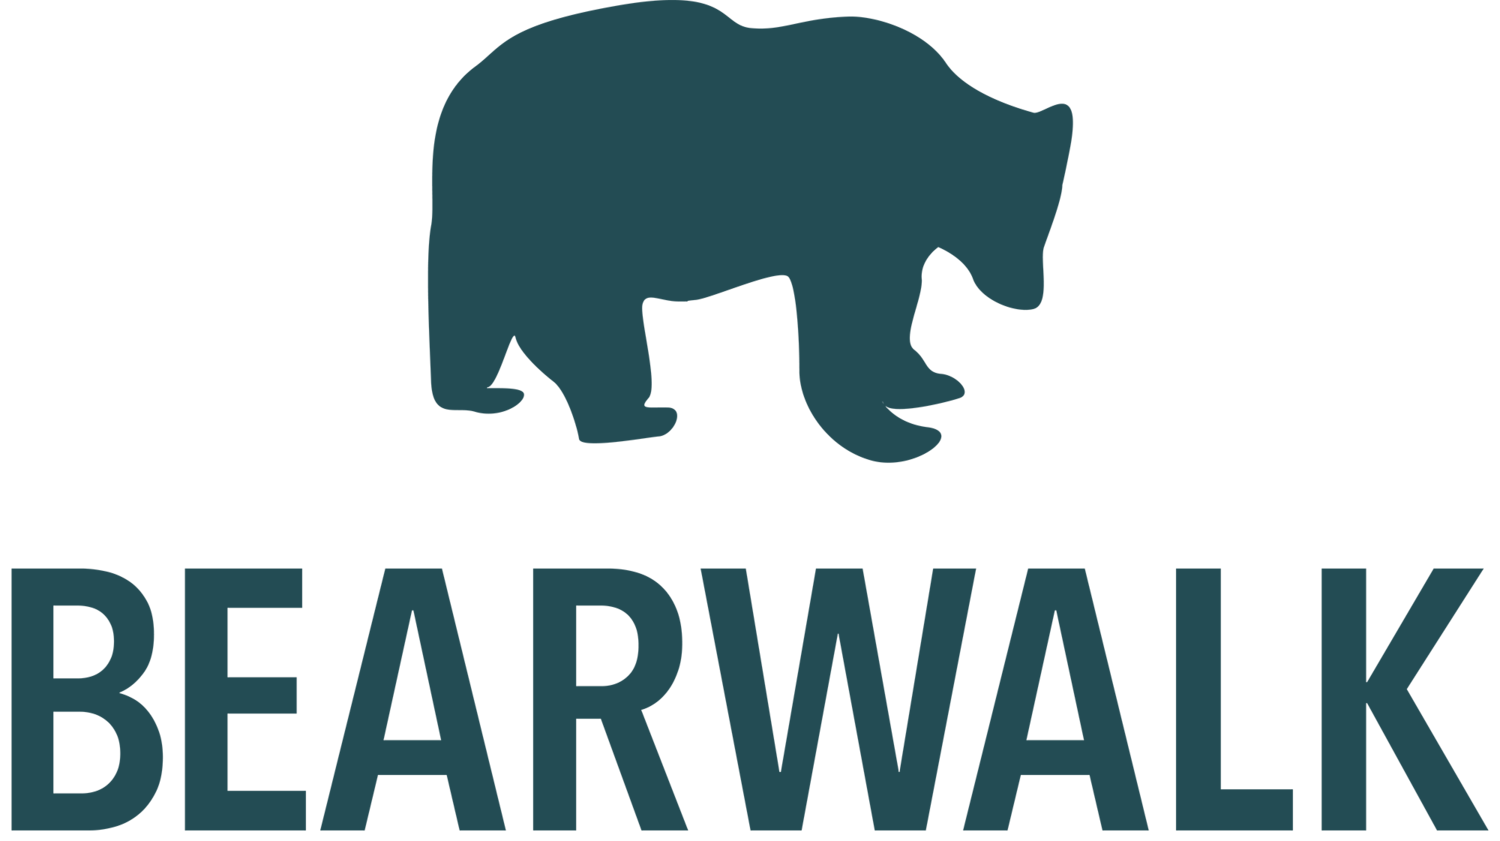 Bearwalk logo.png